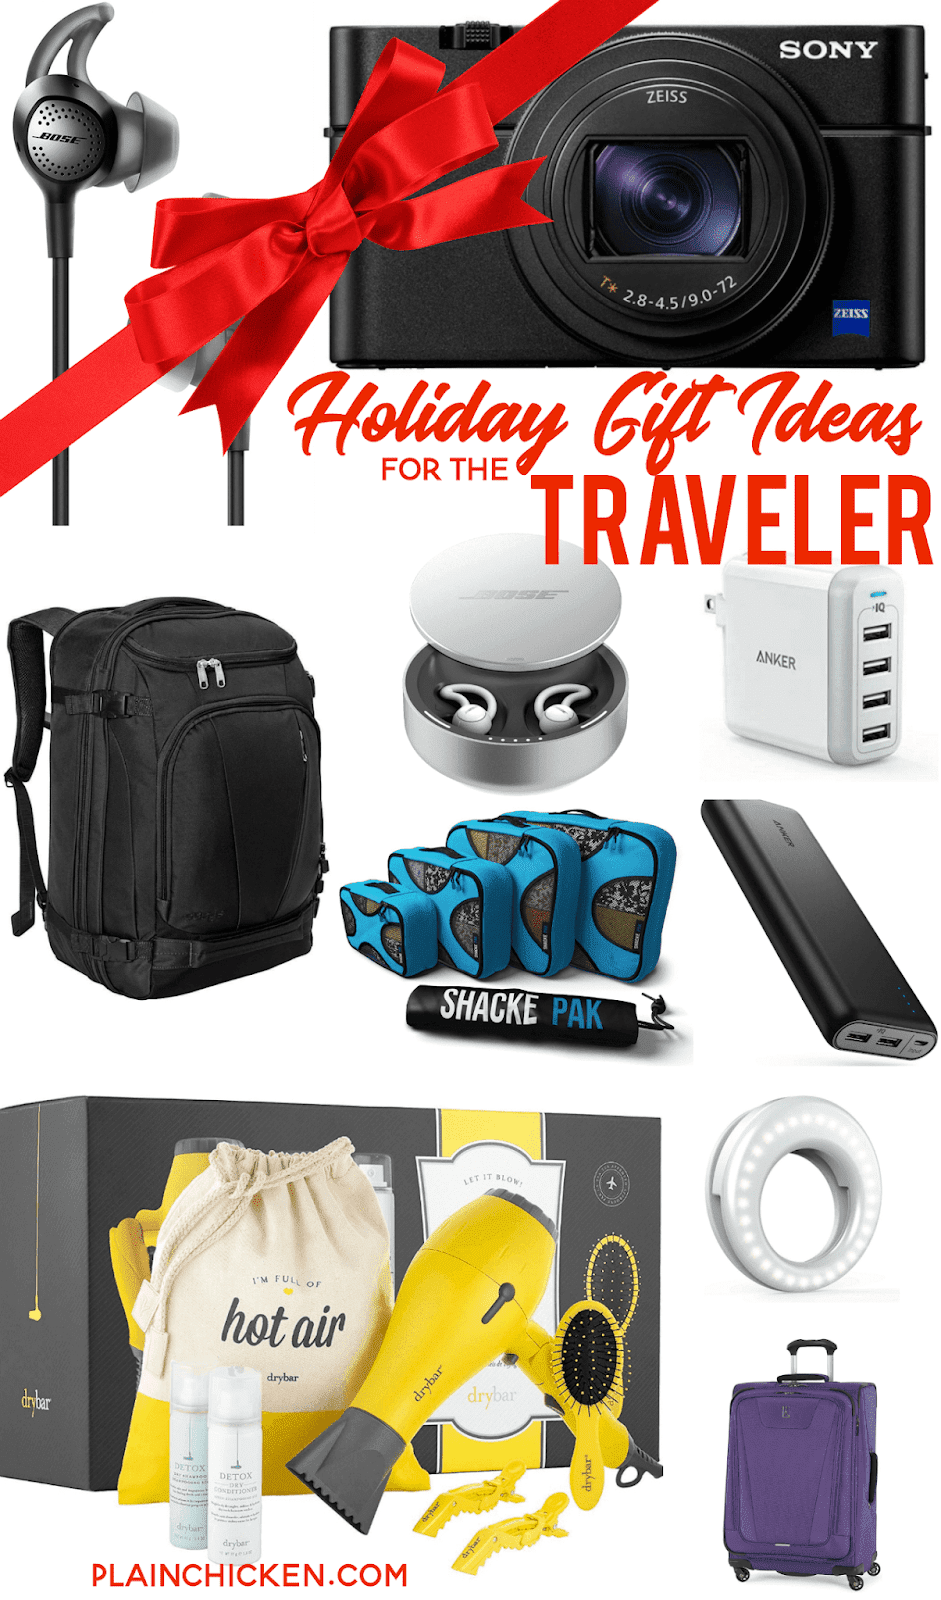 Holiday Gift Ideas for the Traveler - I never travel without all of these items! USB chargers, iPhone cords, the best travel purse, photography lights, the best travel camera, packing cubes, headphones and dual-voltage hair dryer!